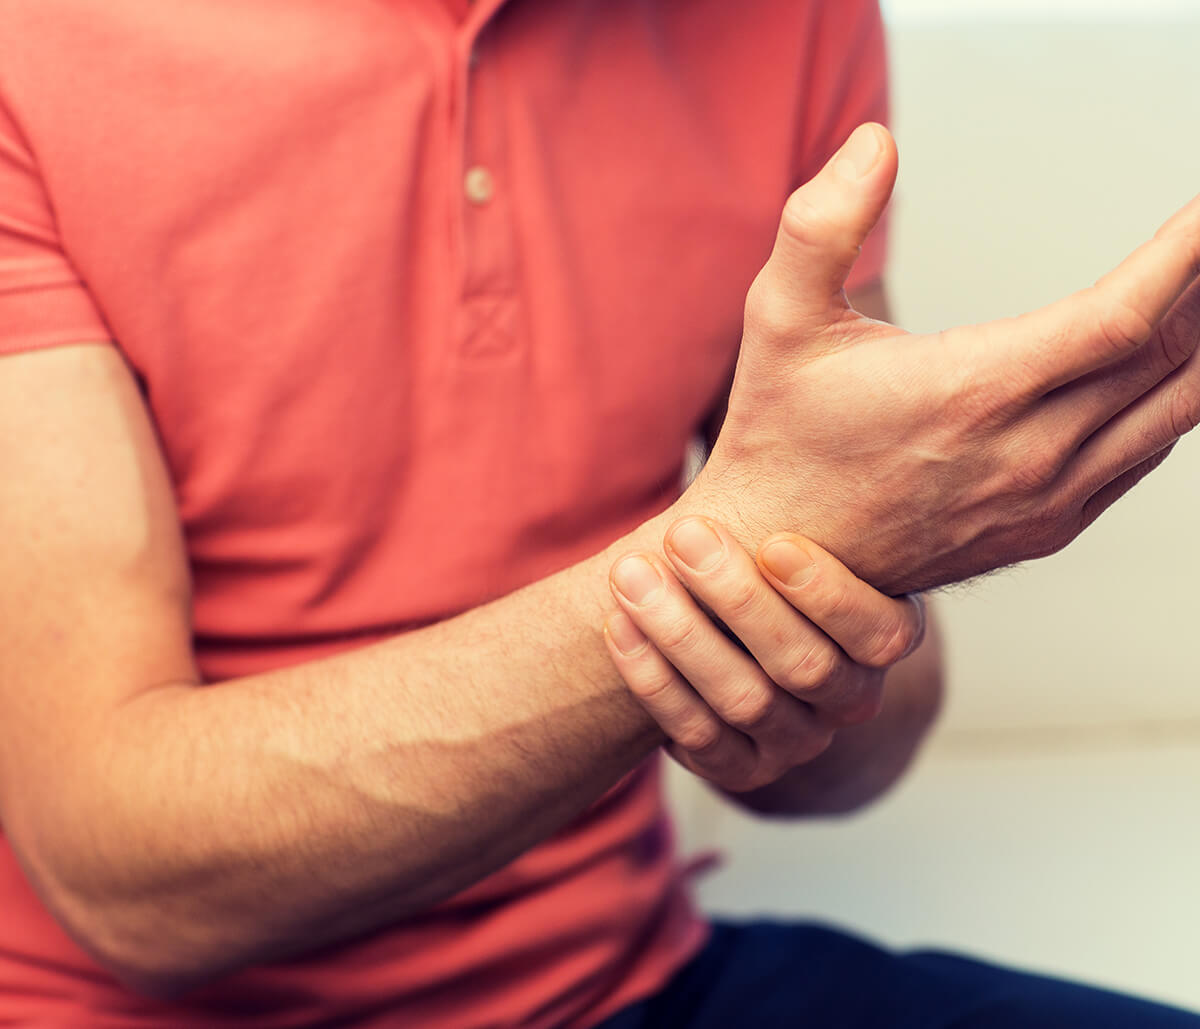 Gout Treatment Options at Seaside Rheumatology & Wellness Center in Encinitas CA Area